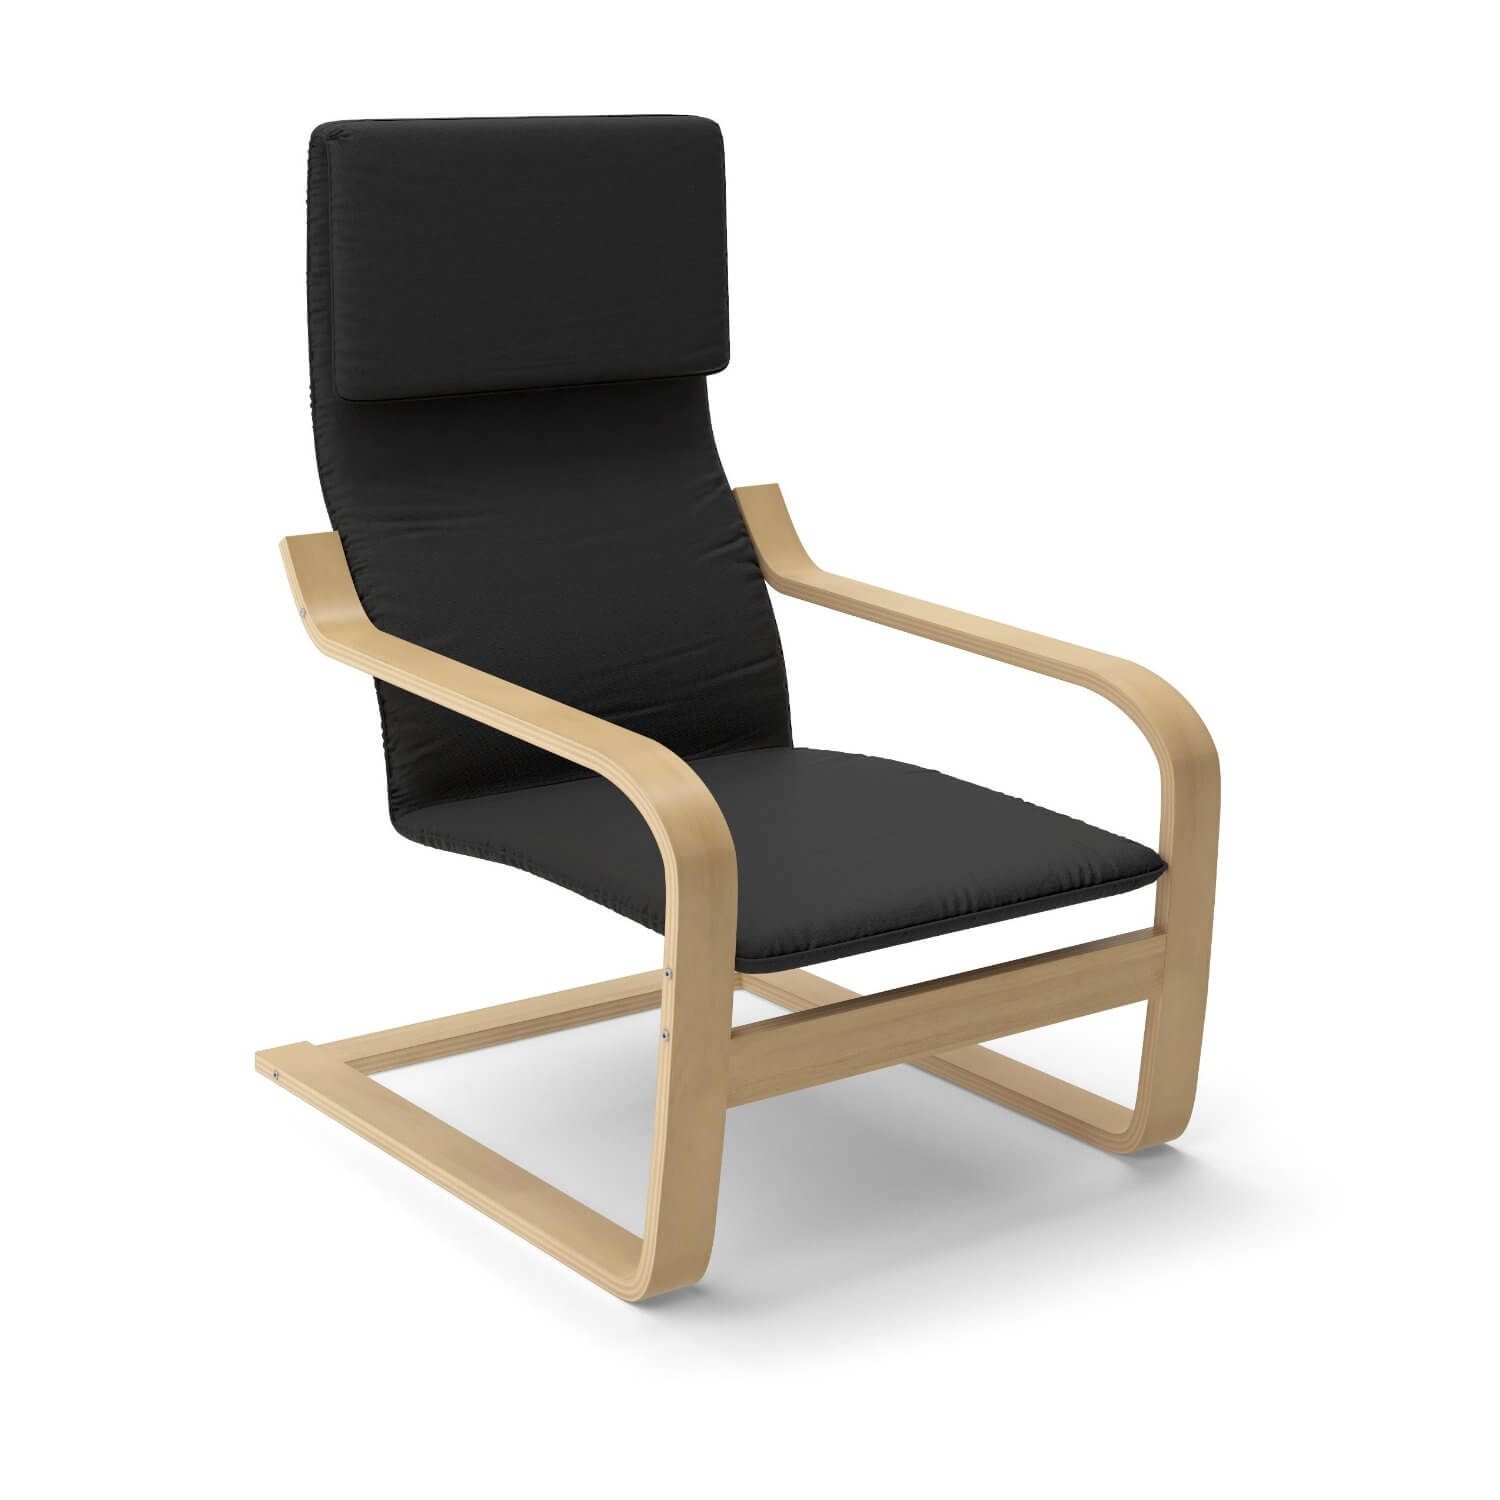 Here's a contemporary accent chair for casual rooms